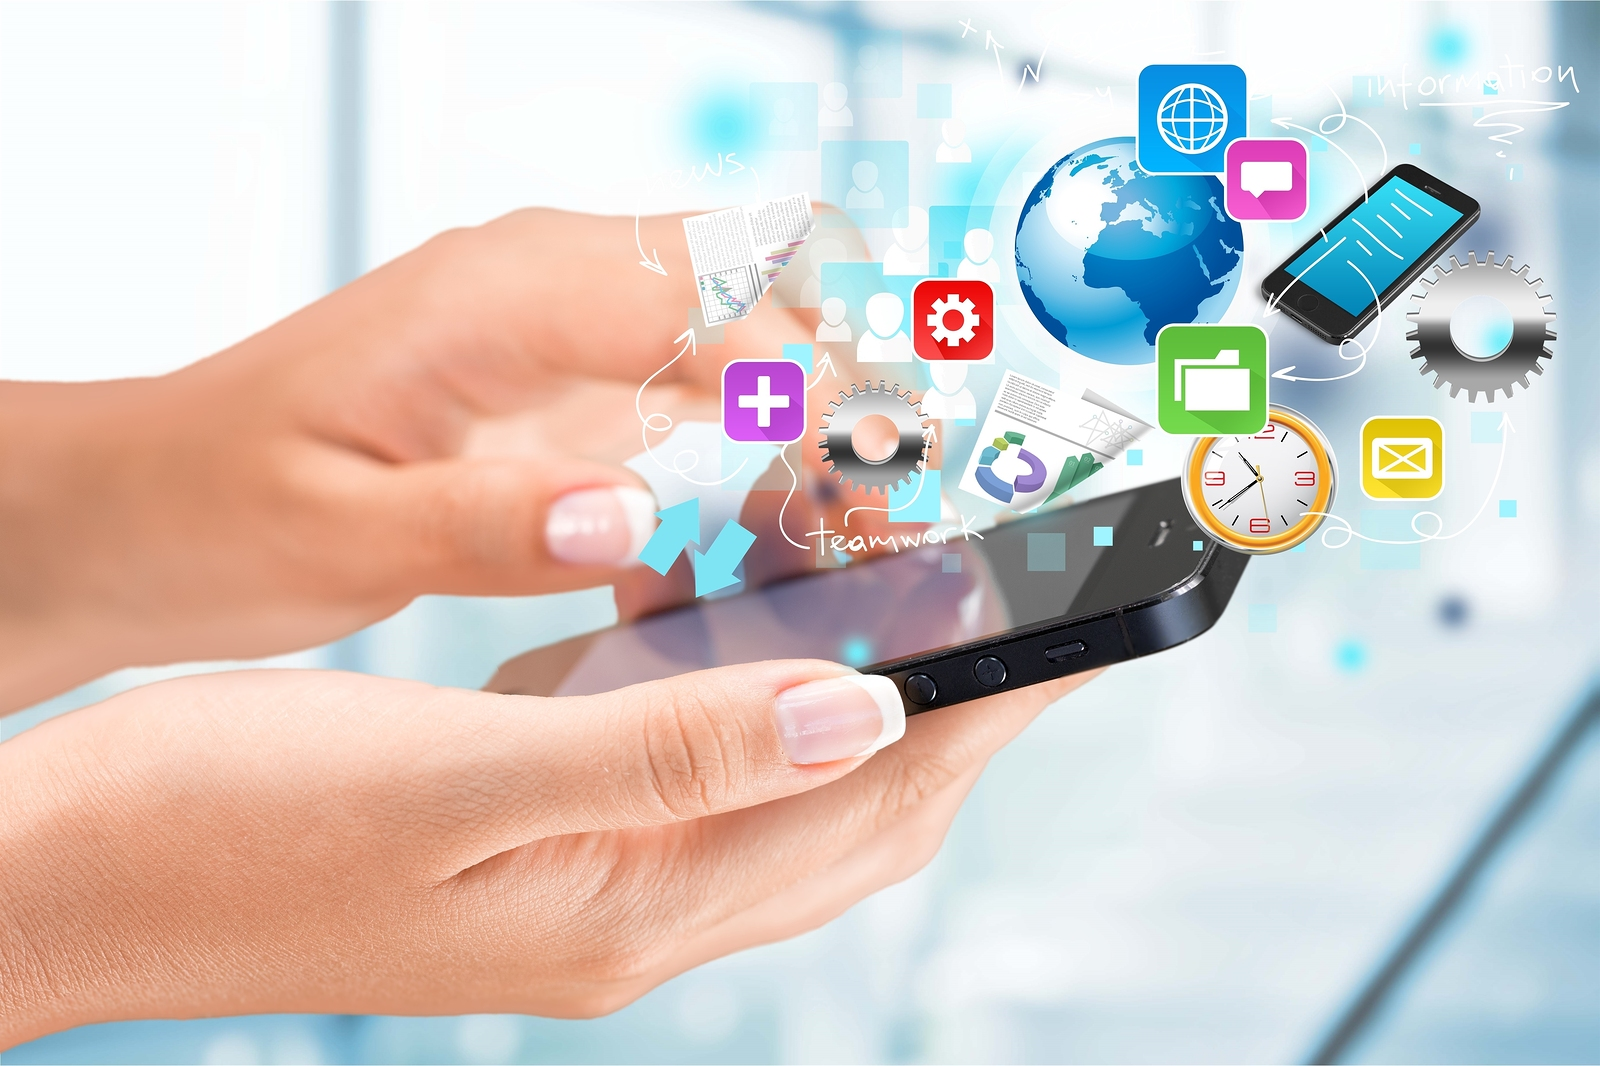 Why Use an App to Promote Your Business